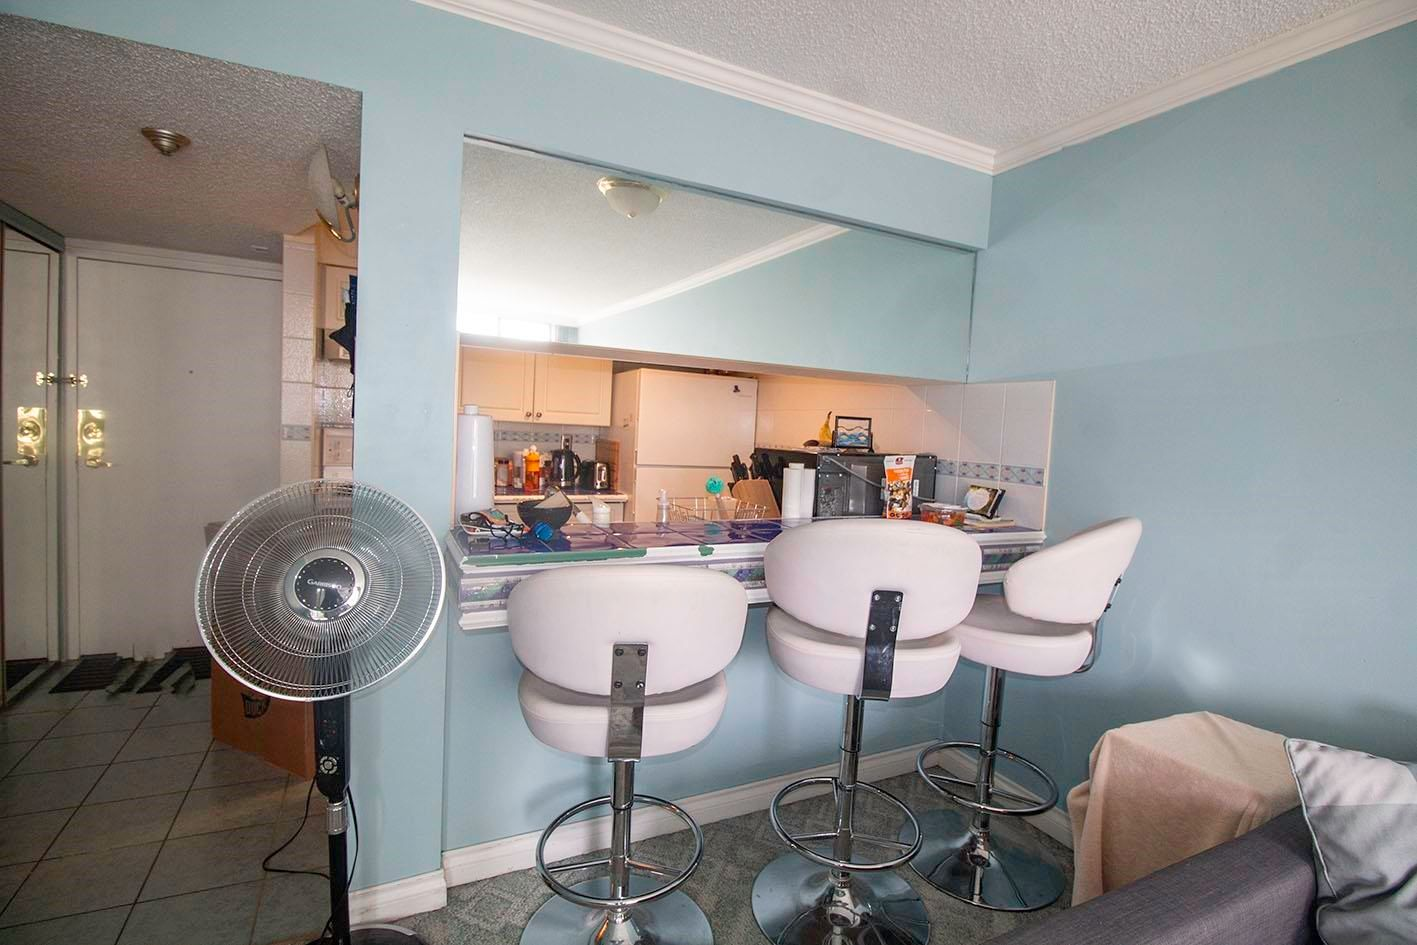 """Main Photo: 704 1270 ROBSON Street in Vancouver: West End VW Condo for sale in """"ROBSON GARDENS"""" (Vancouver West)  : MLS®# R2598377"""